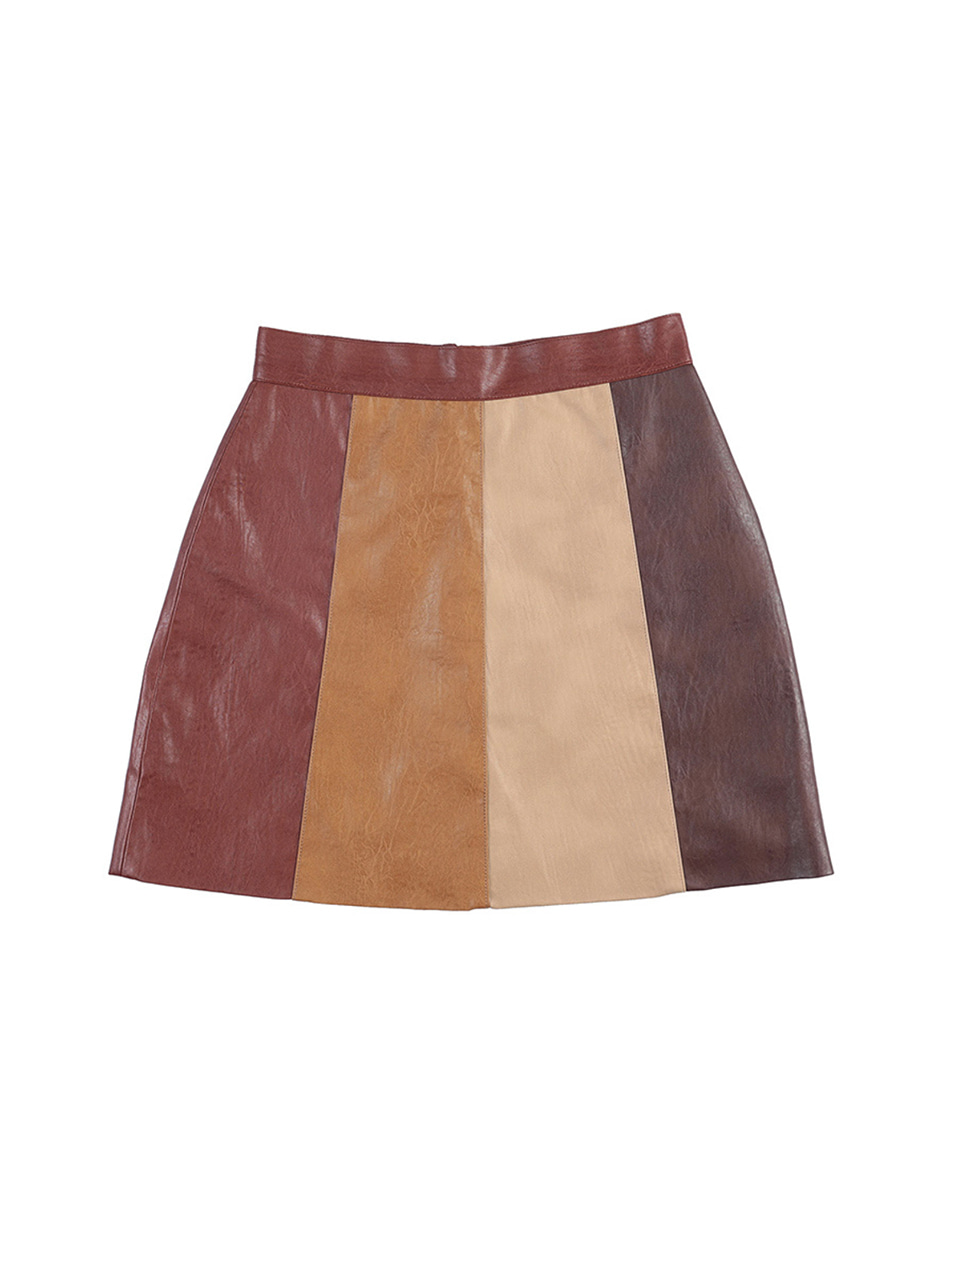 mgmg artificial leather skirt_brown